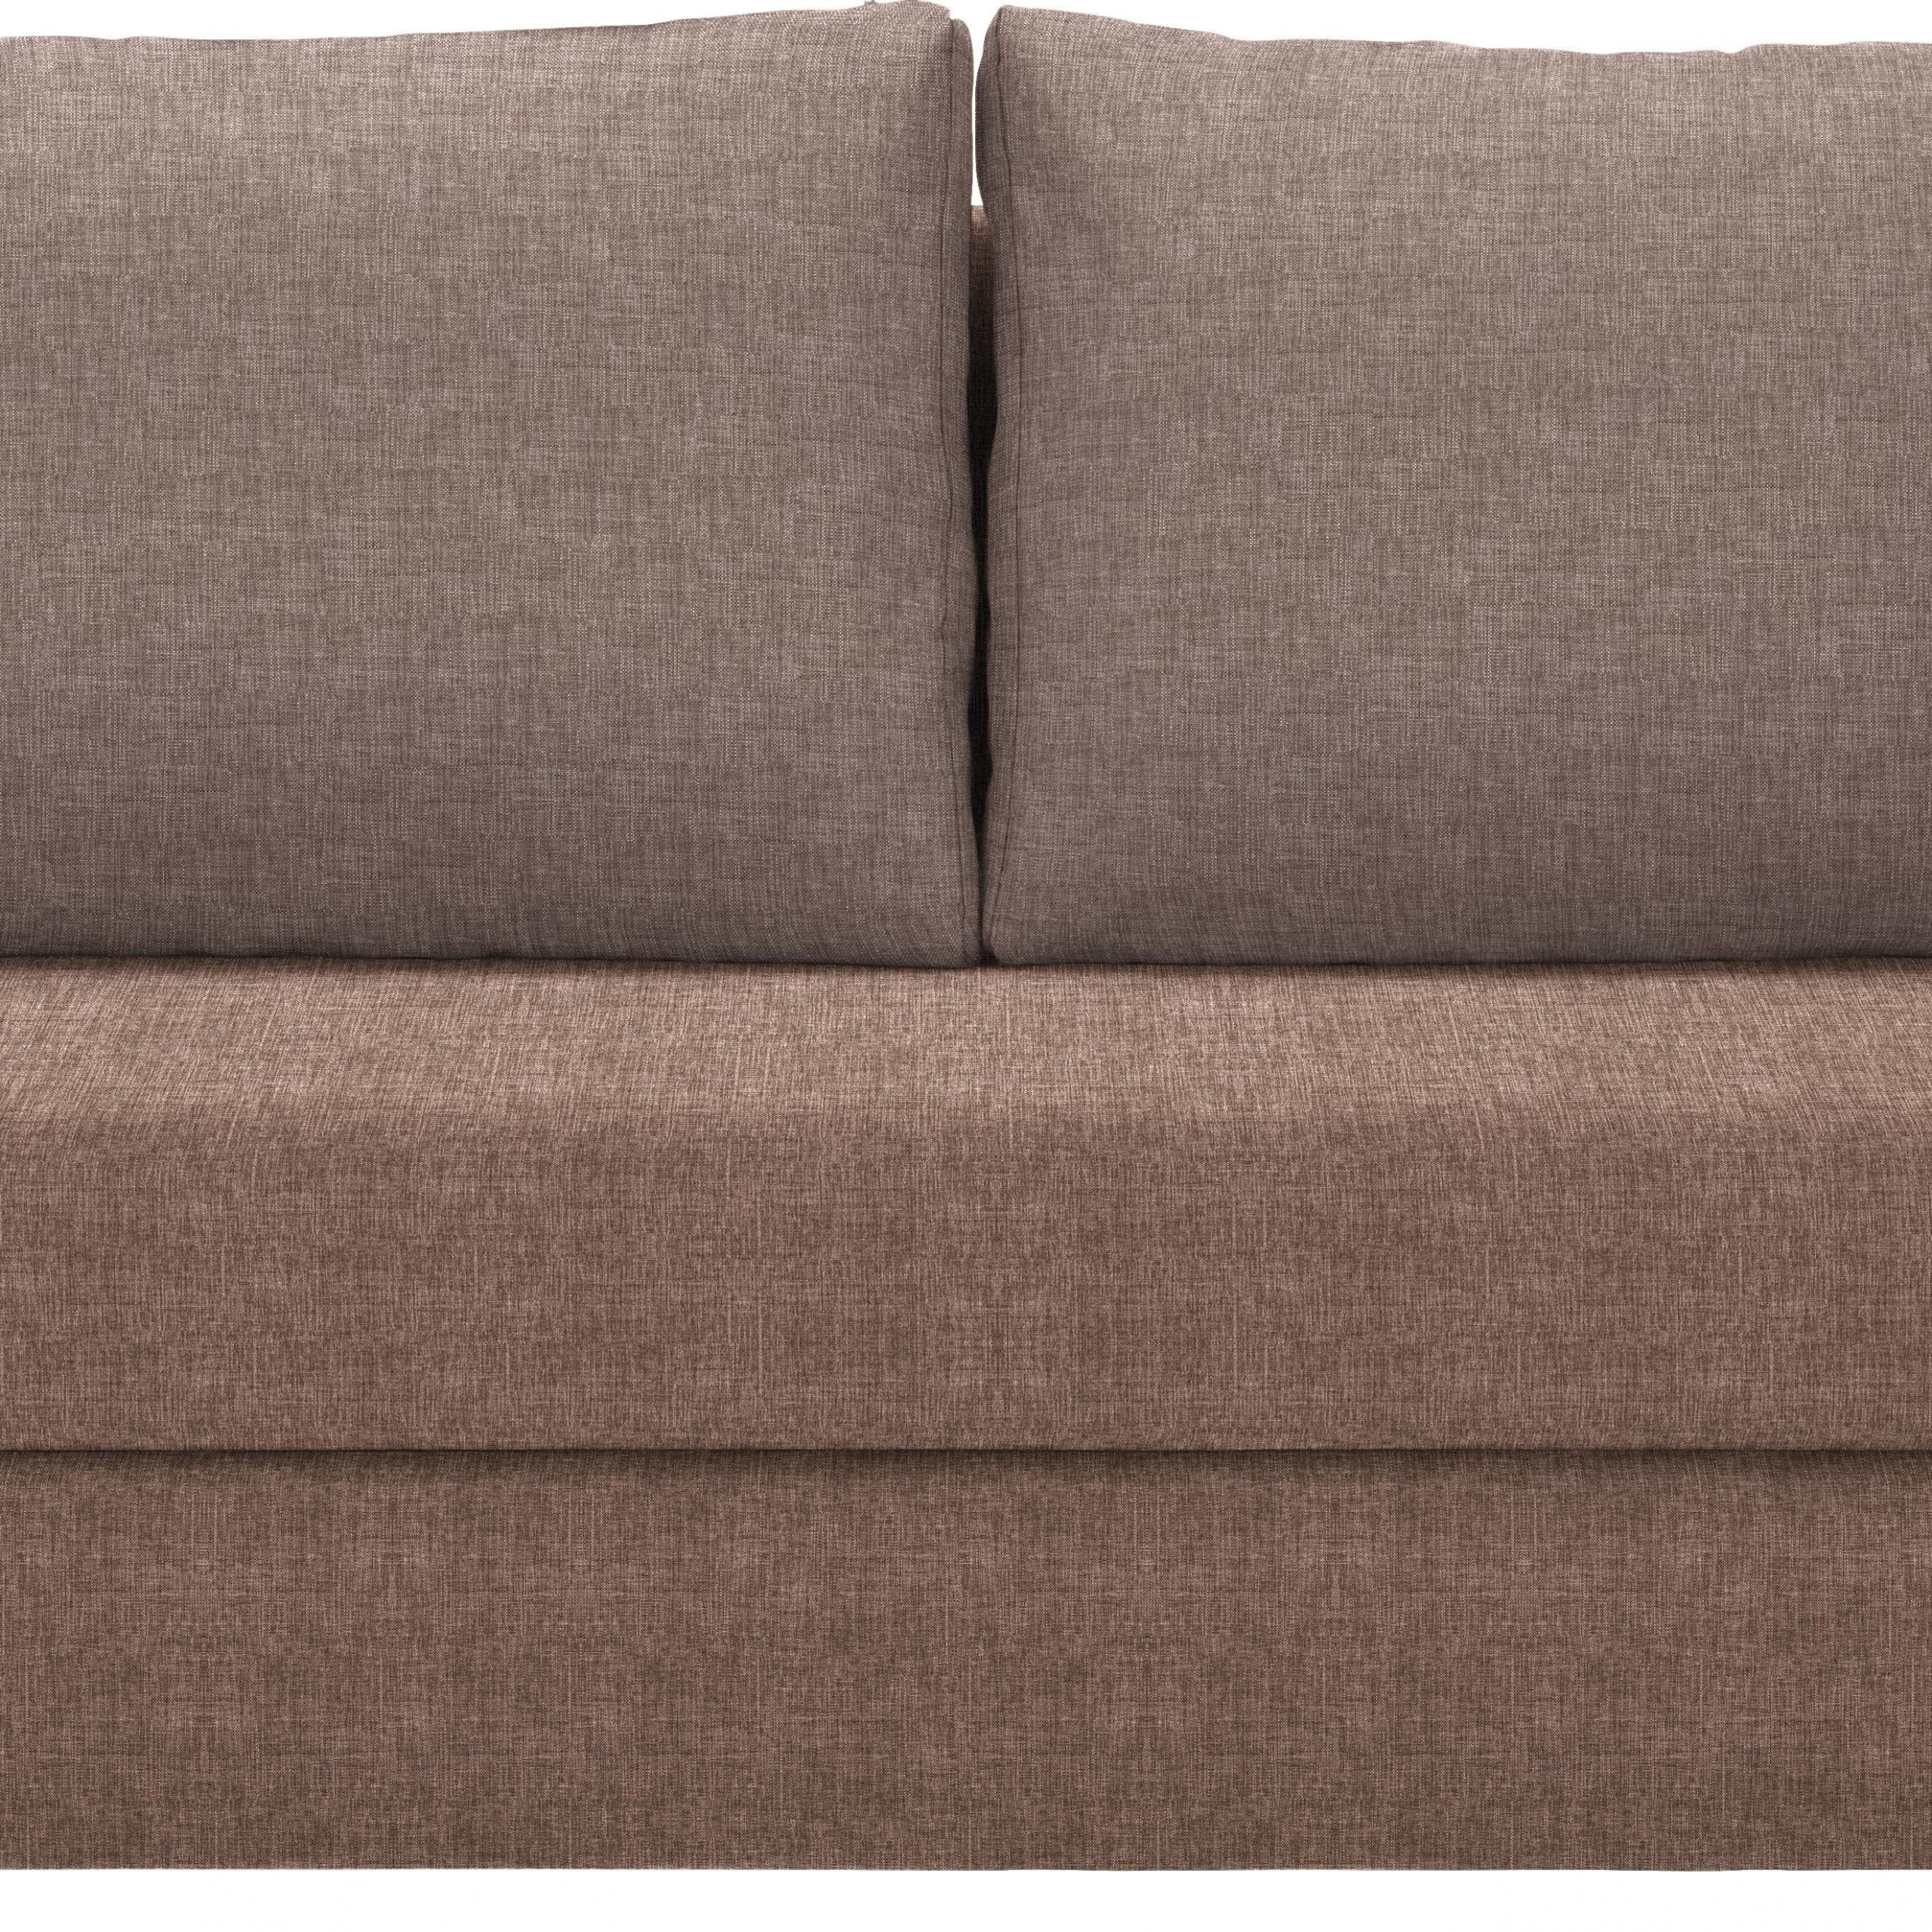 Dayse Contemporary Loveseats With Cushion In 2020 Schlafsofas Online Kaufen Xxxlutz (View 13 of 25)